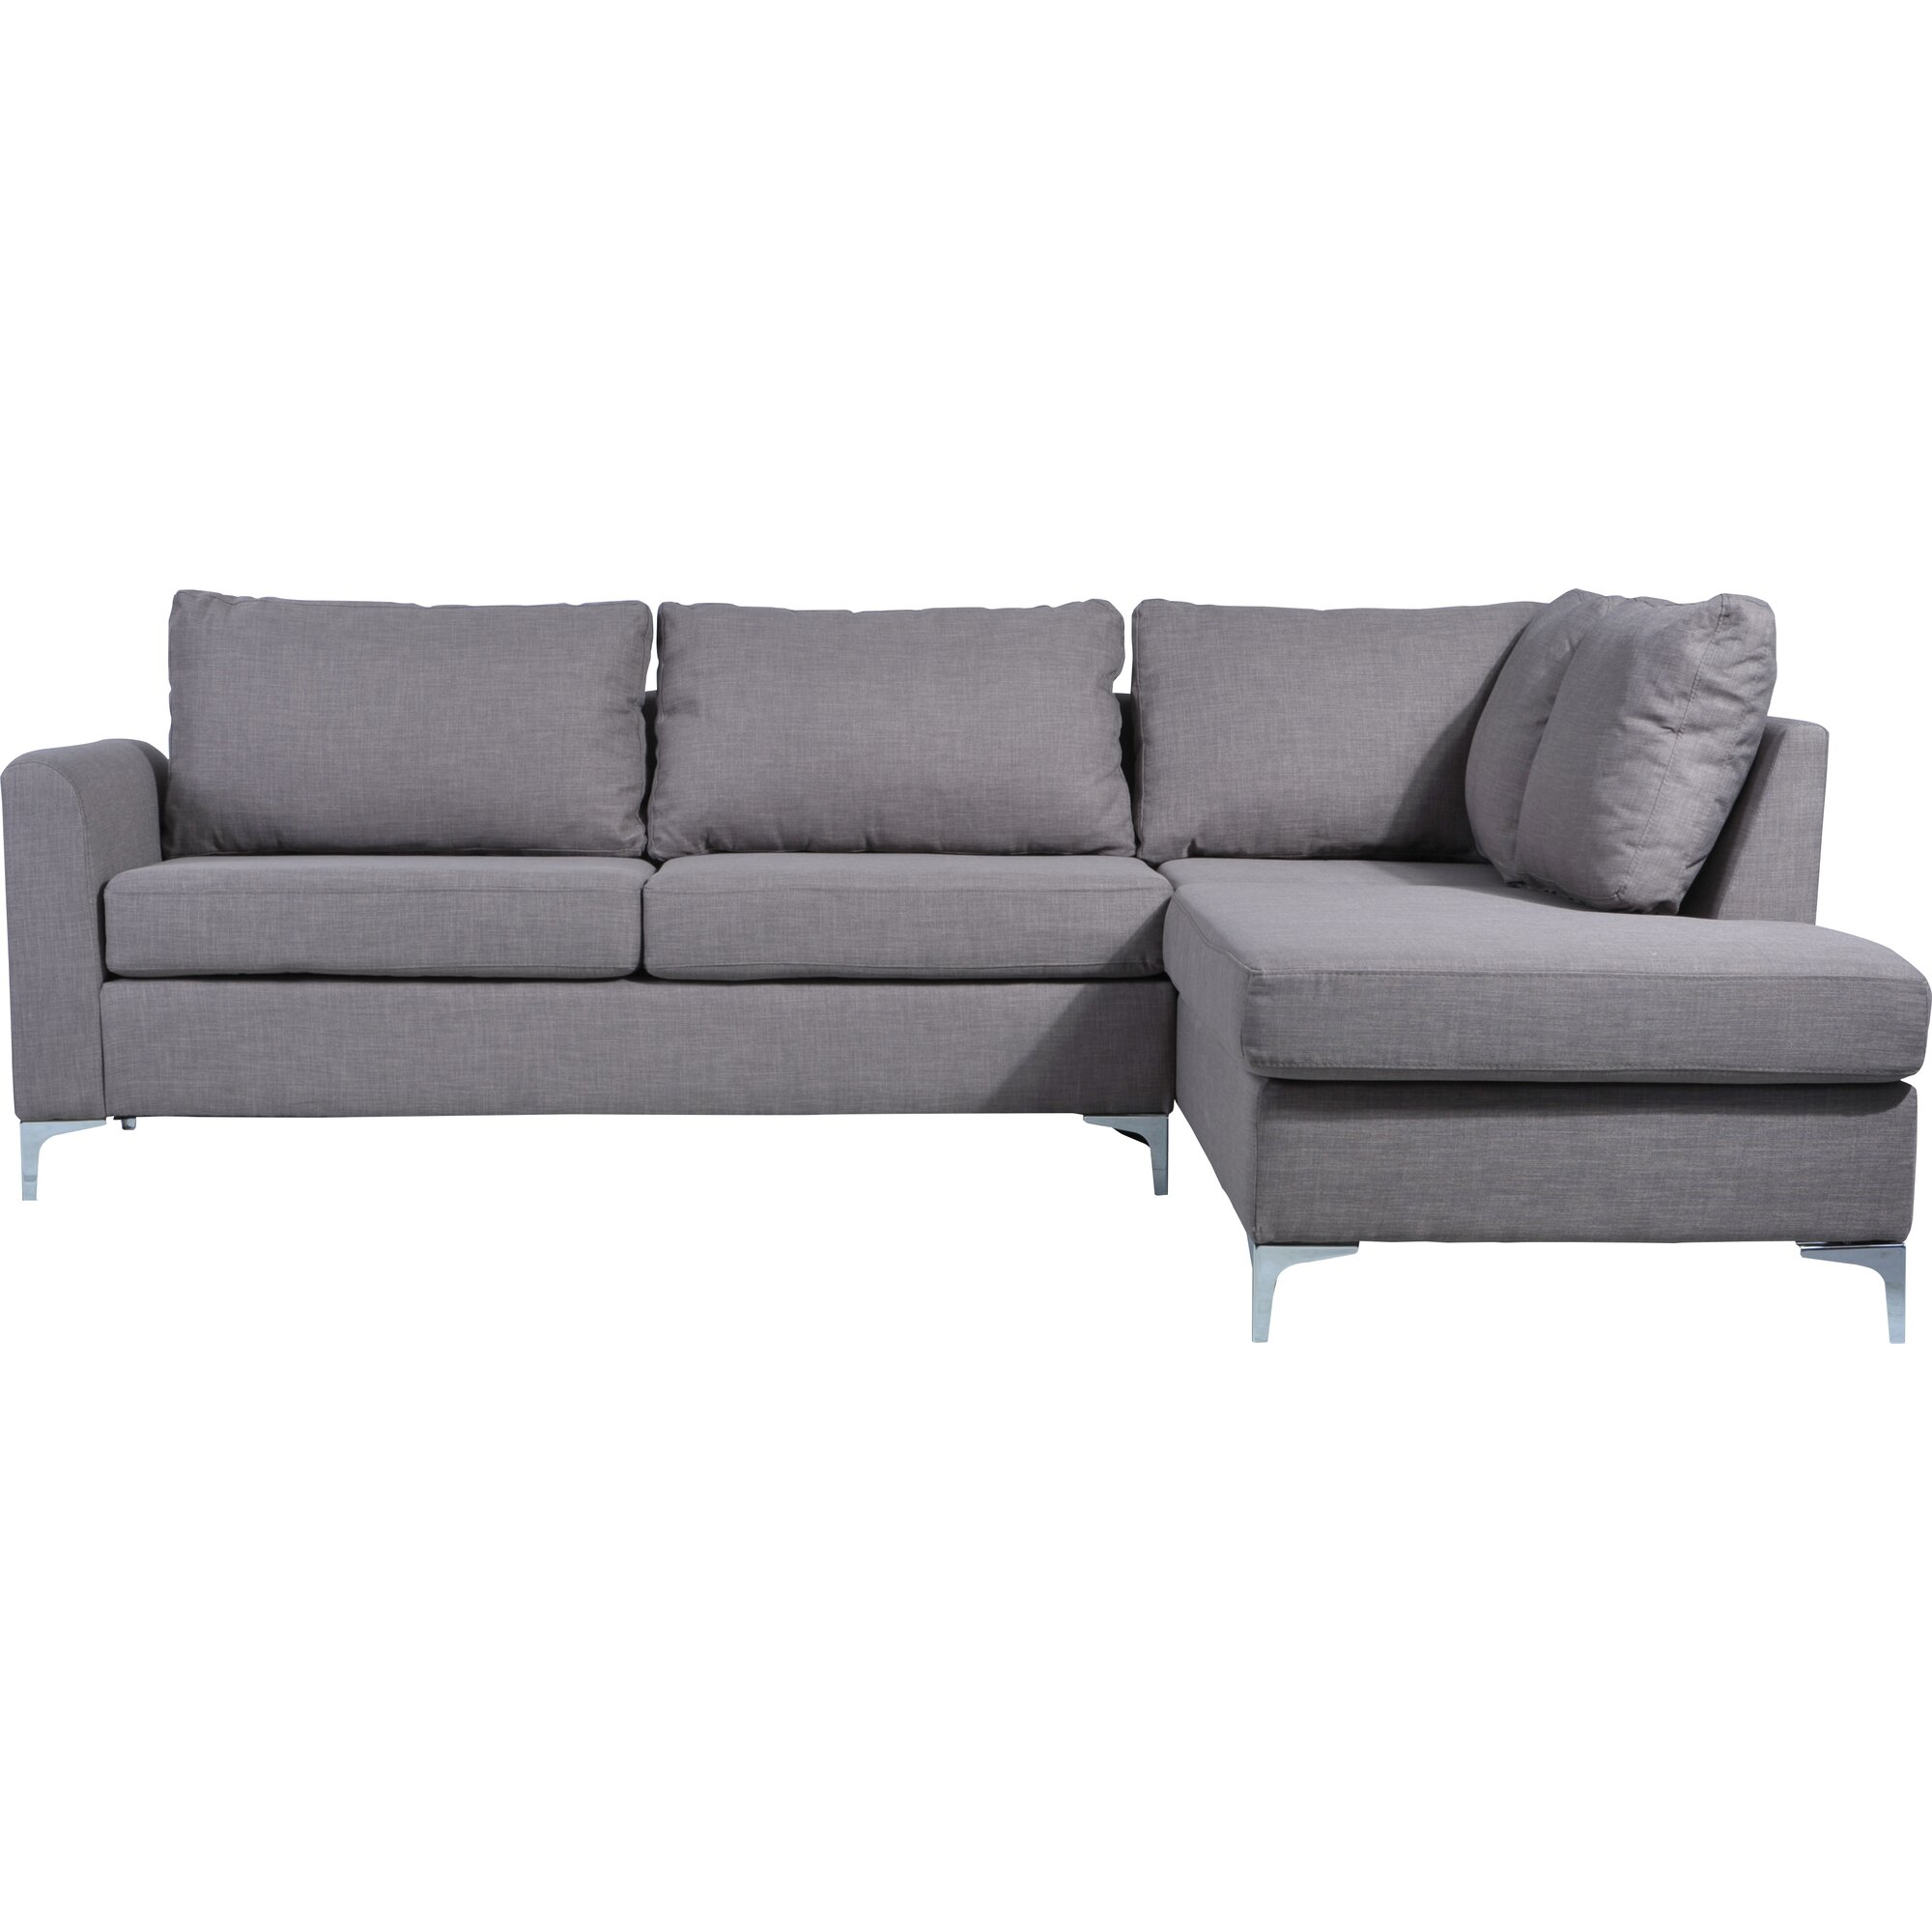 pact Sectional Sofa Camber pact Sectional From Design